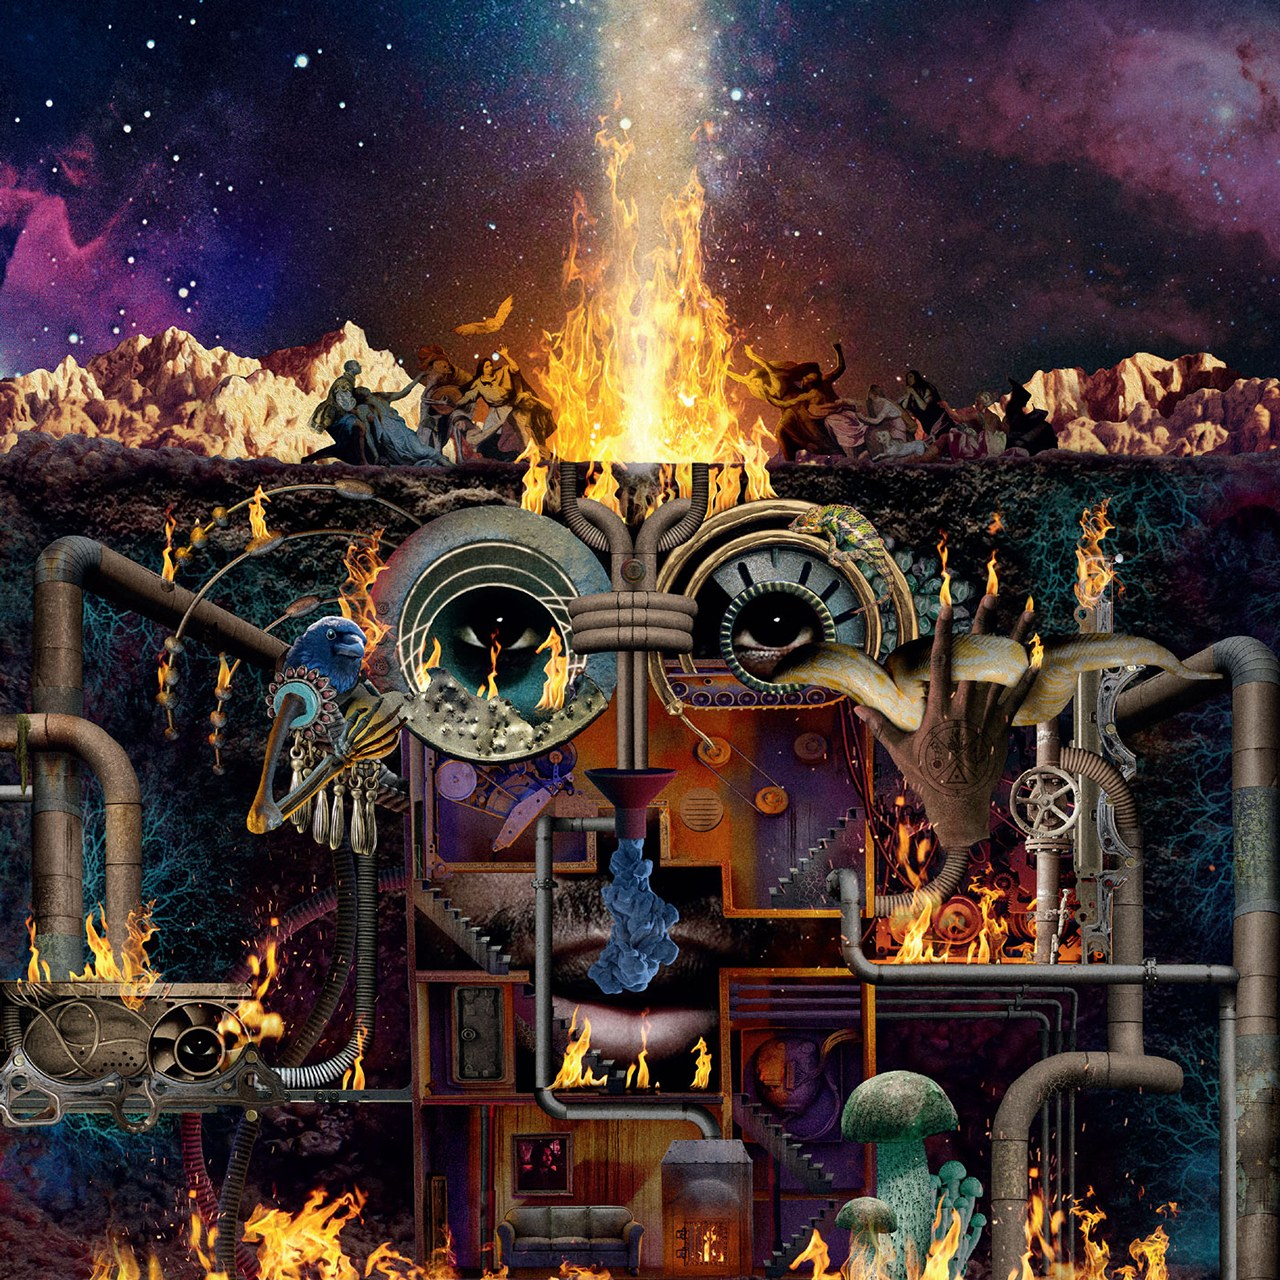 Flying Lotus Announces New Album Flamagra Shares Song and Video With David Lynch Watch